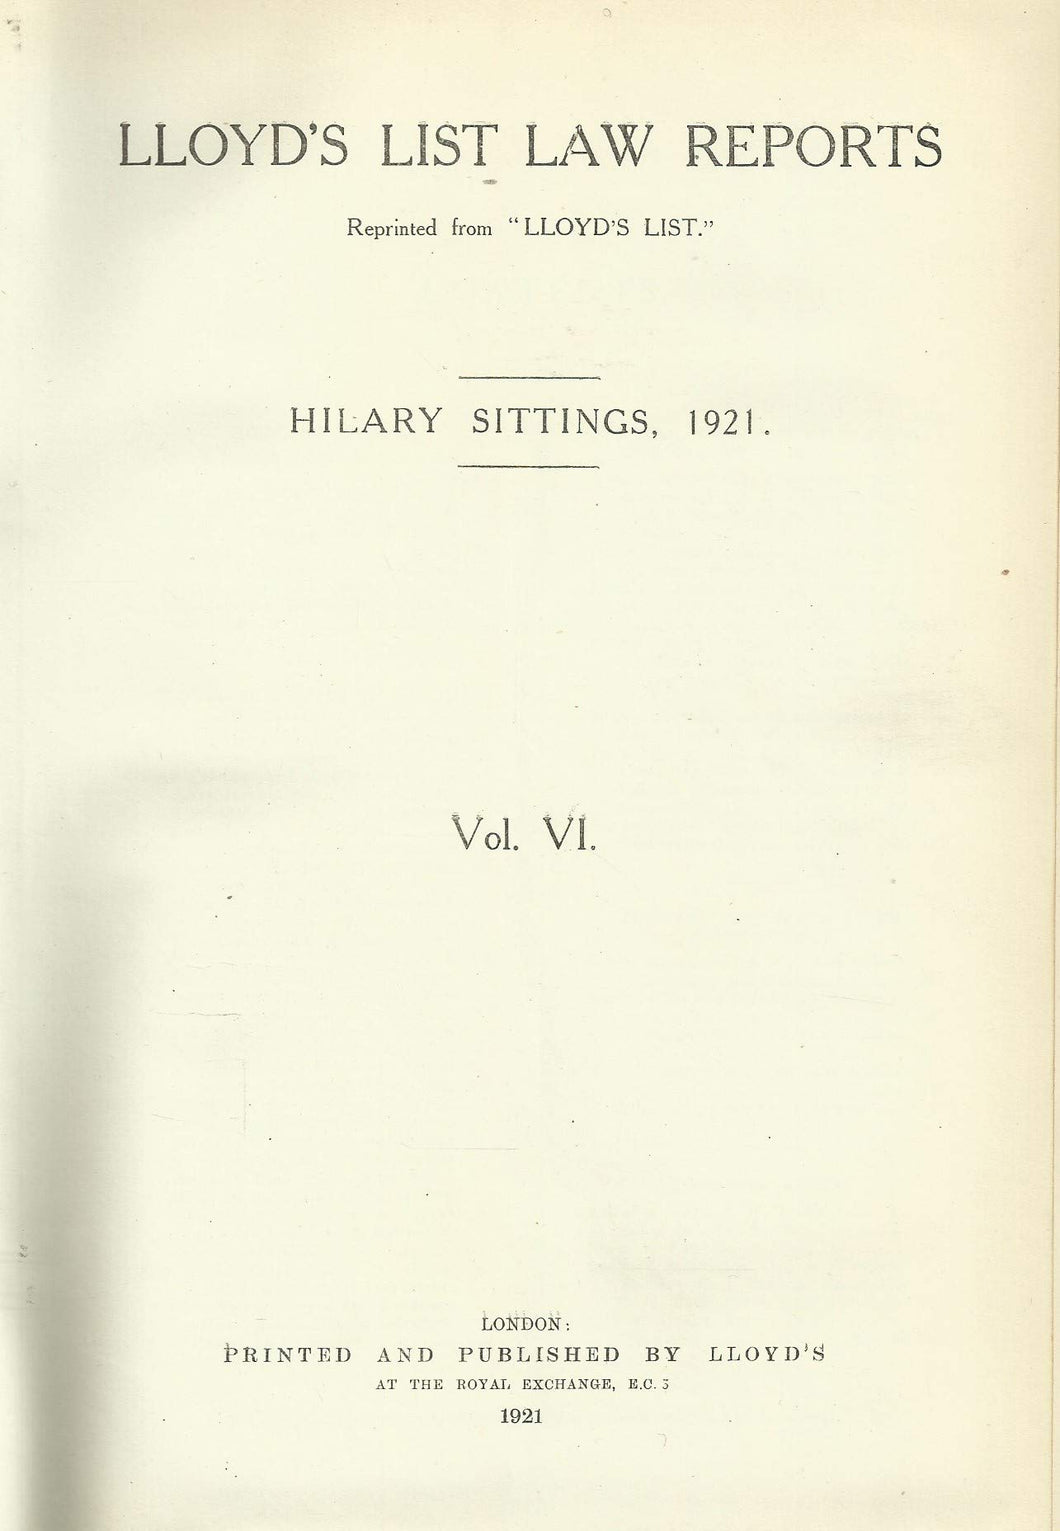 Lloyd's List Law Reports - Volume VI (Volume 6), Hilary Sittings, 1921